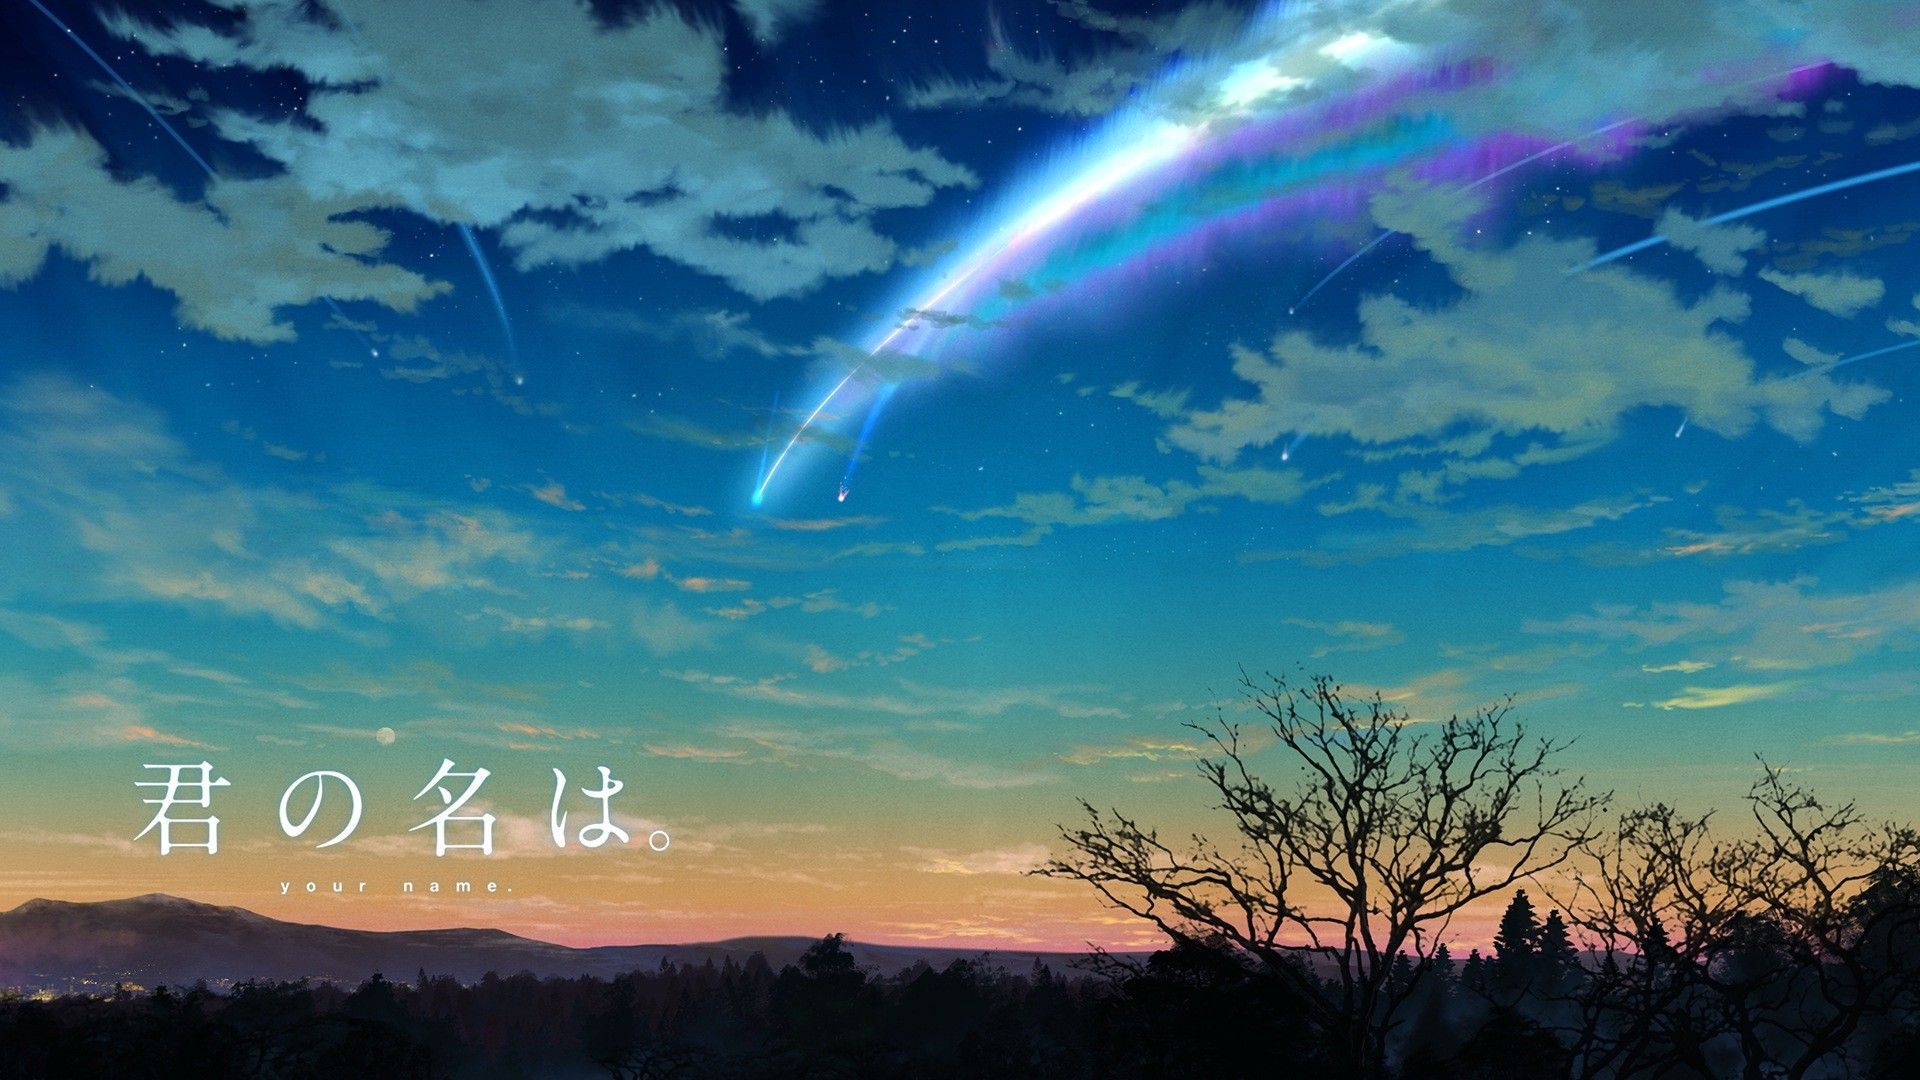 Lake Your Name Anime Wallpapers Top Free Lake Your Name Anime Backgrounds Wallpaperaccess